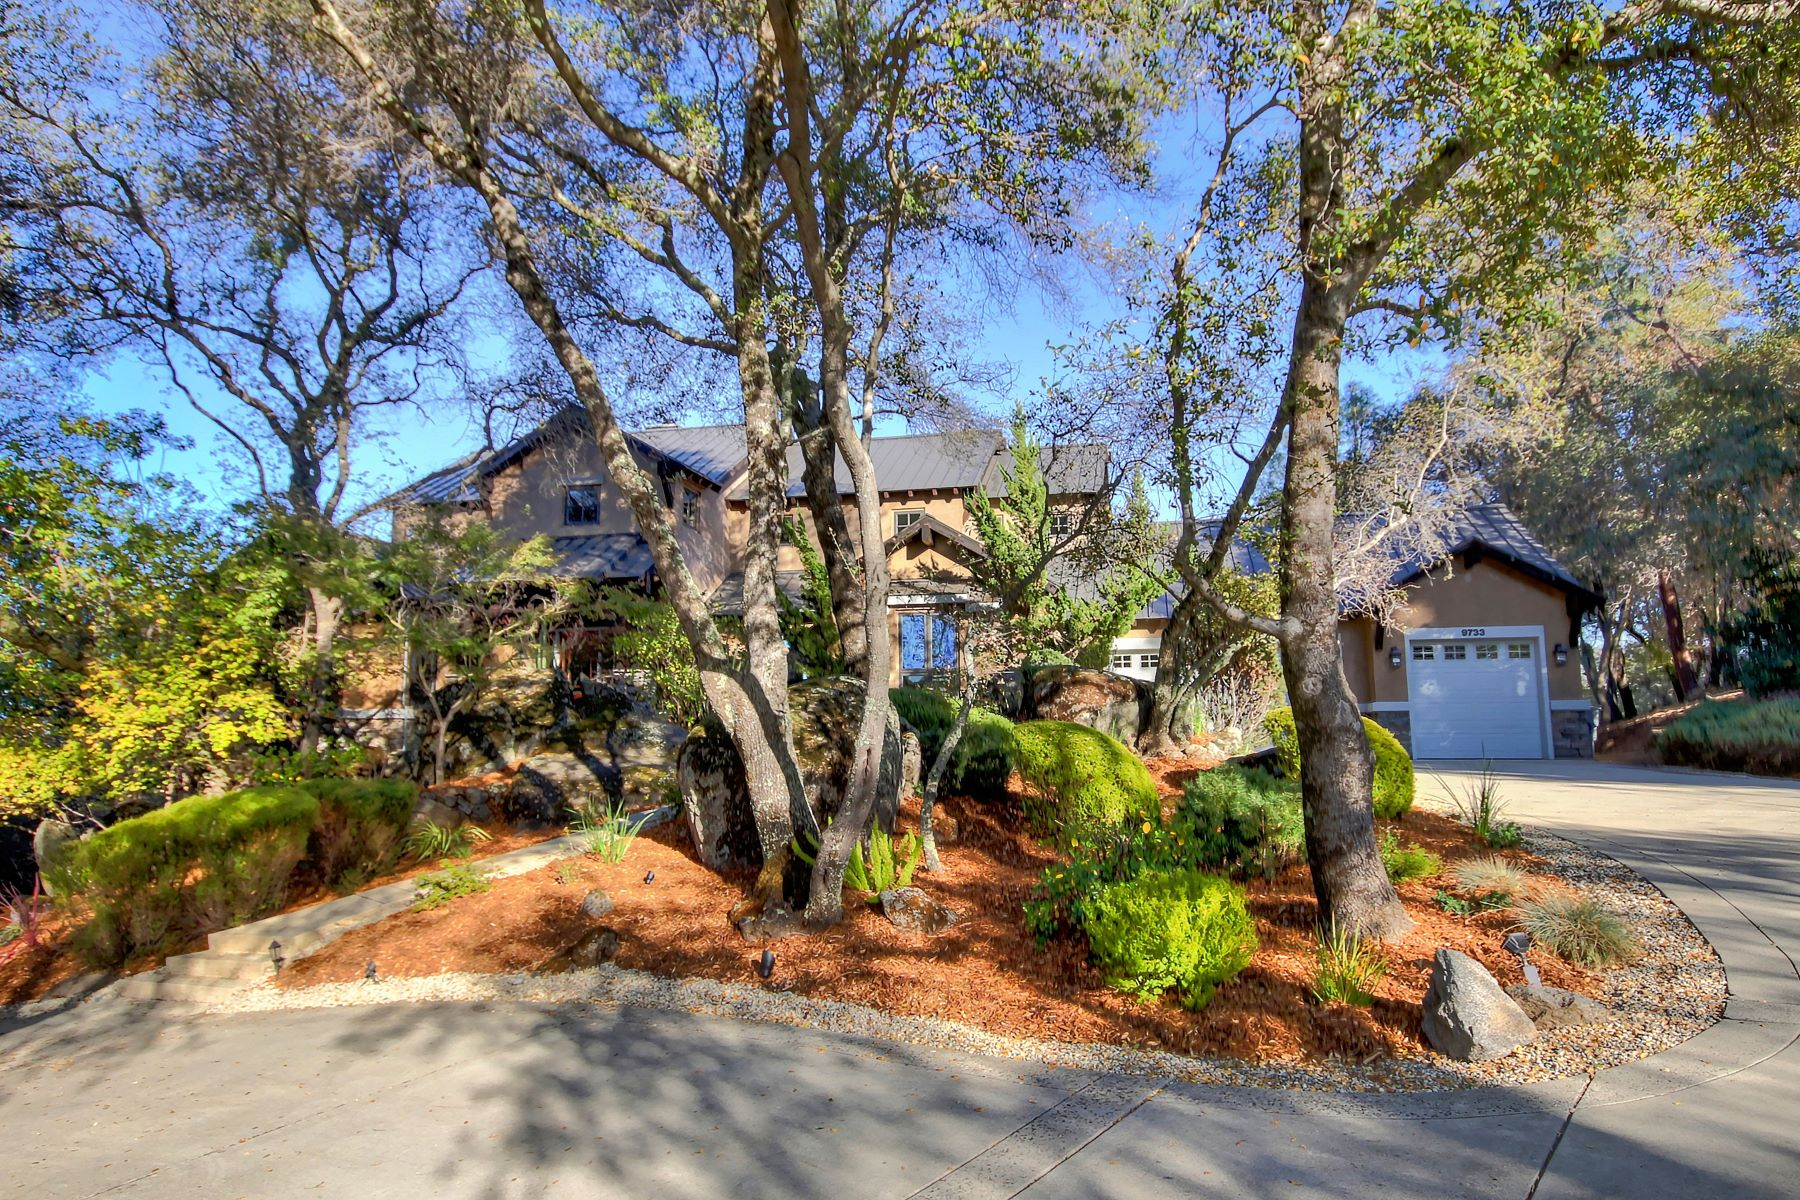 Single Family Homes for Sale at 9733 Rim Rock Circle, Loomis, CA 95650 9733 Rim Rock Circle Loomis, California 95650 United States